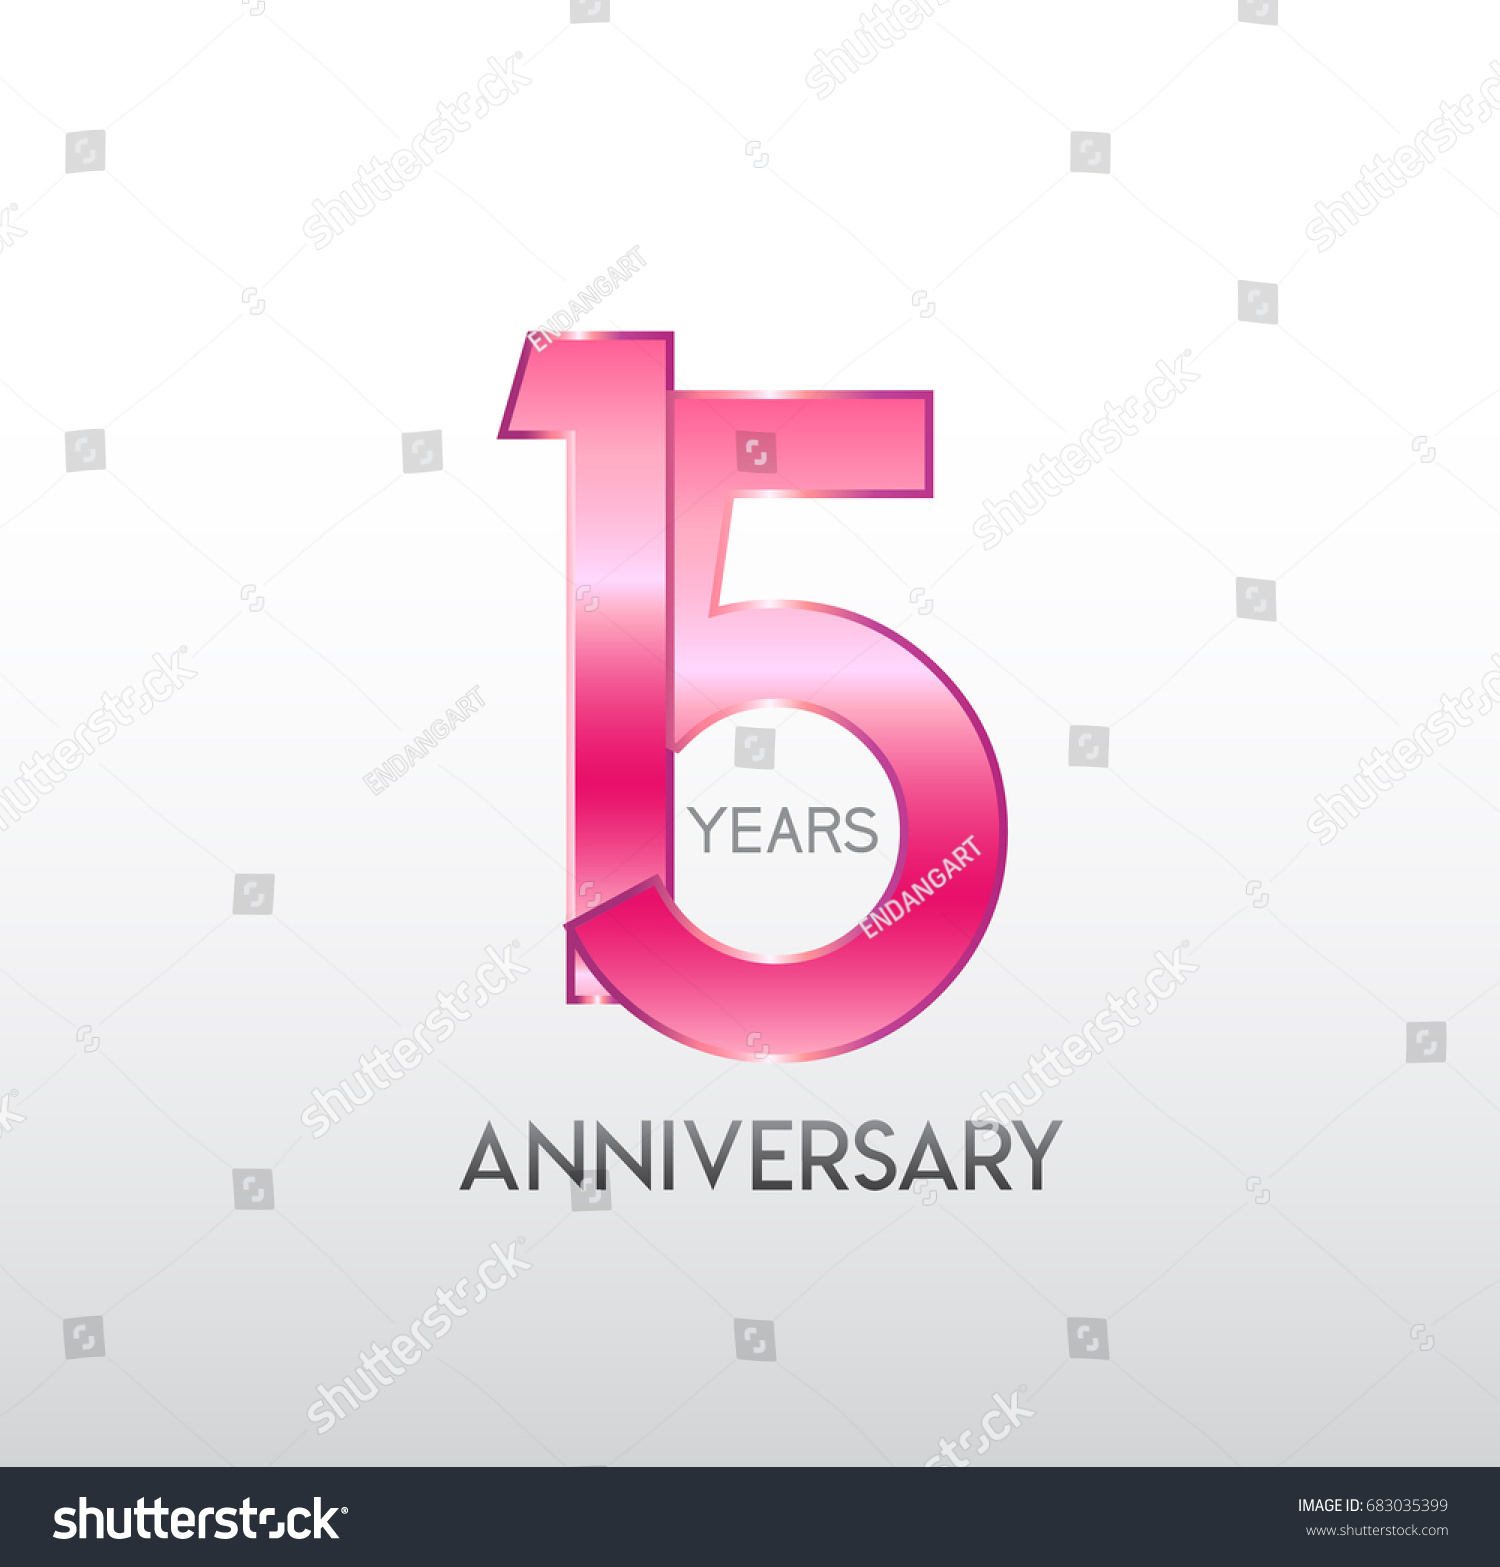 15 years pink anniversary overlapping number stock vector 15 years pink anniversary with overlapping number for business corporate wedding biocorpaavc